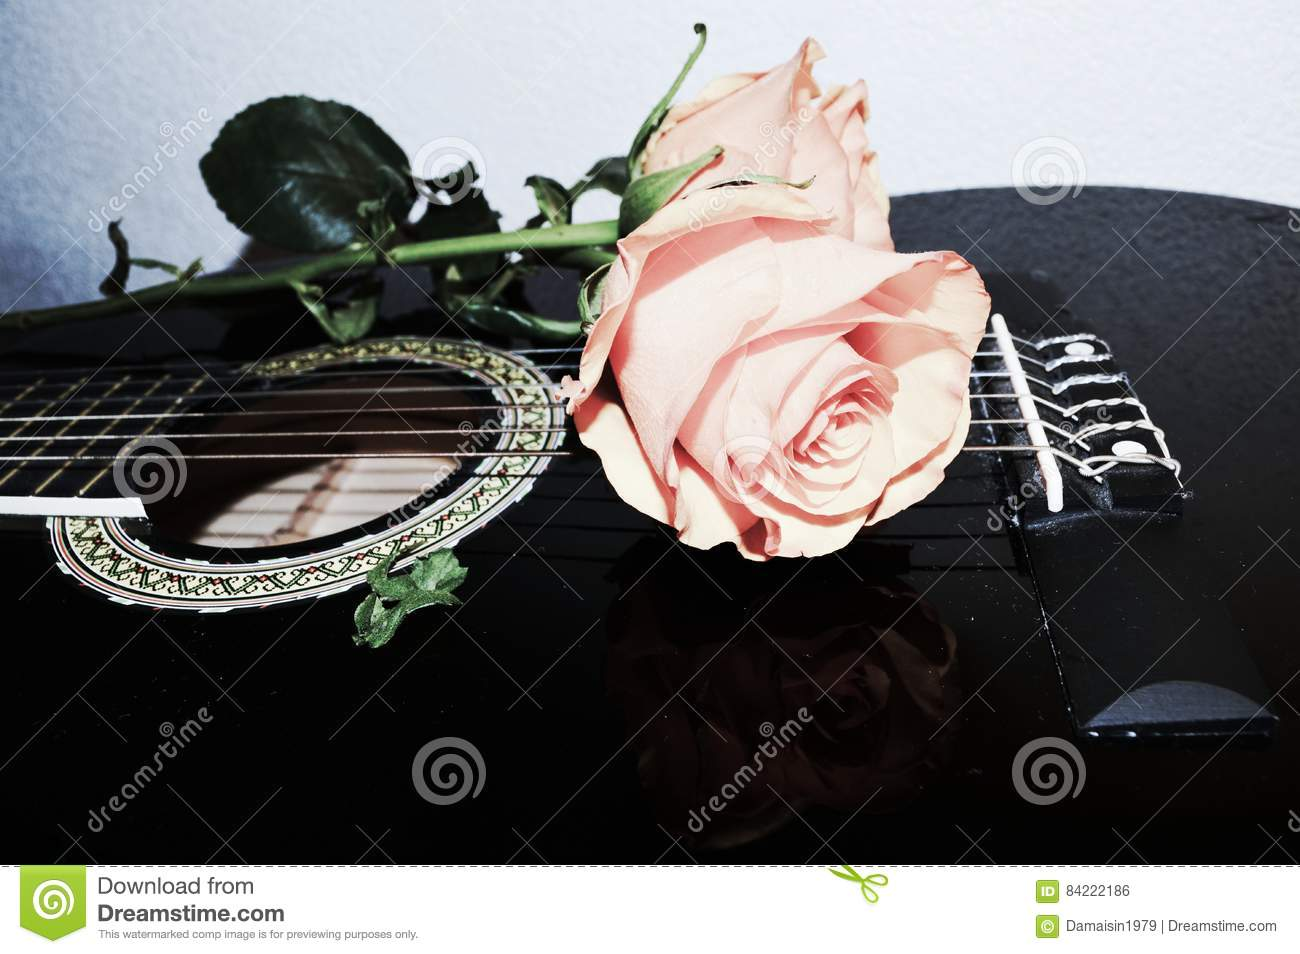 Strings and roses, symbols